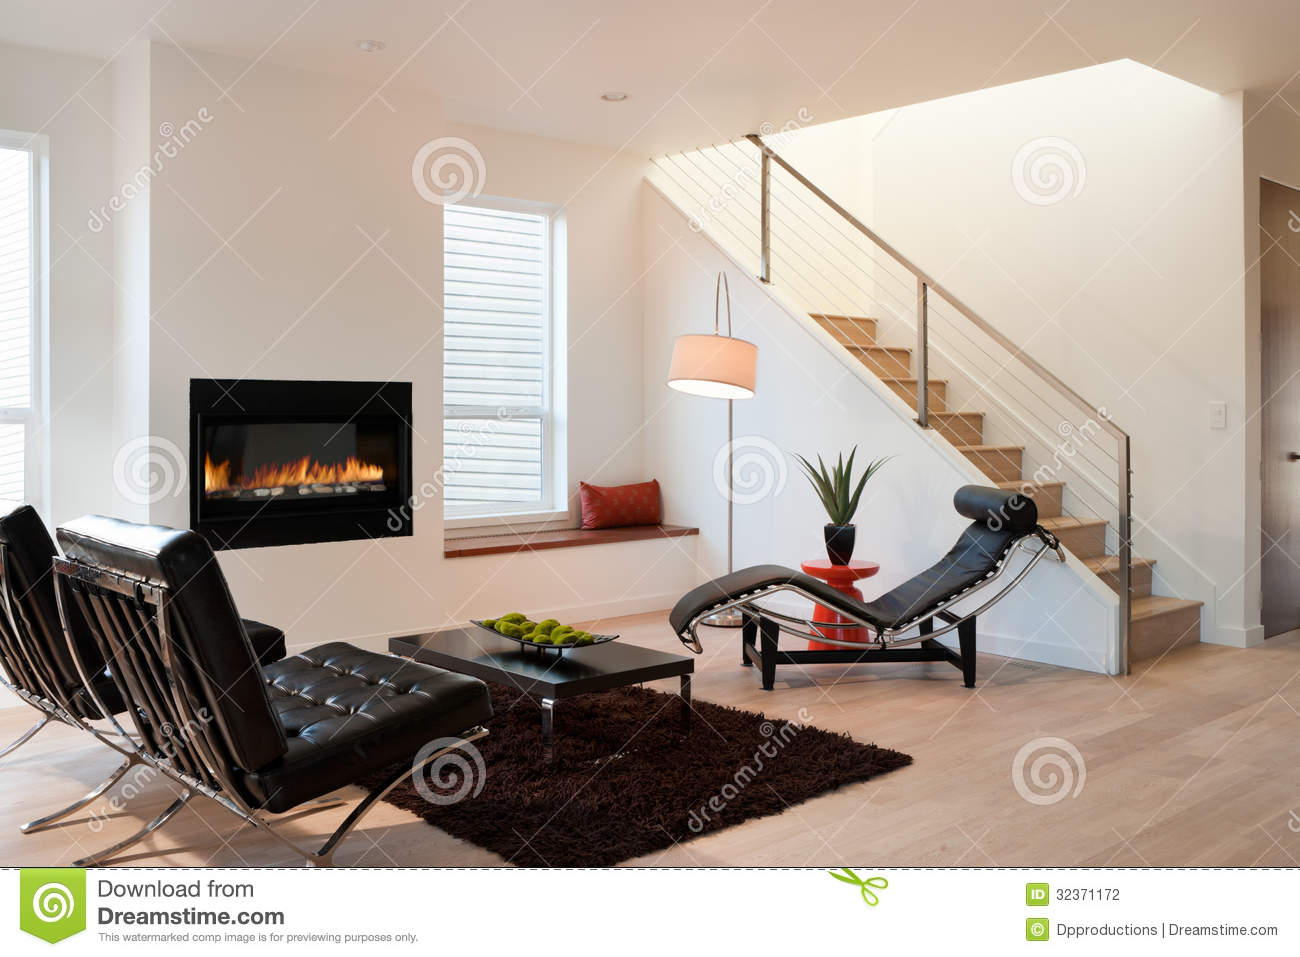 Salon de luxe moderne photo stock image du maison home - Salon de maison moderne ...